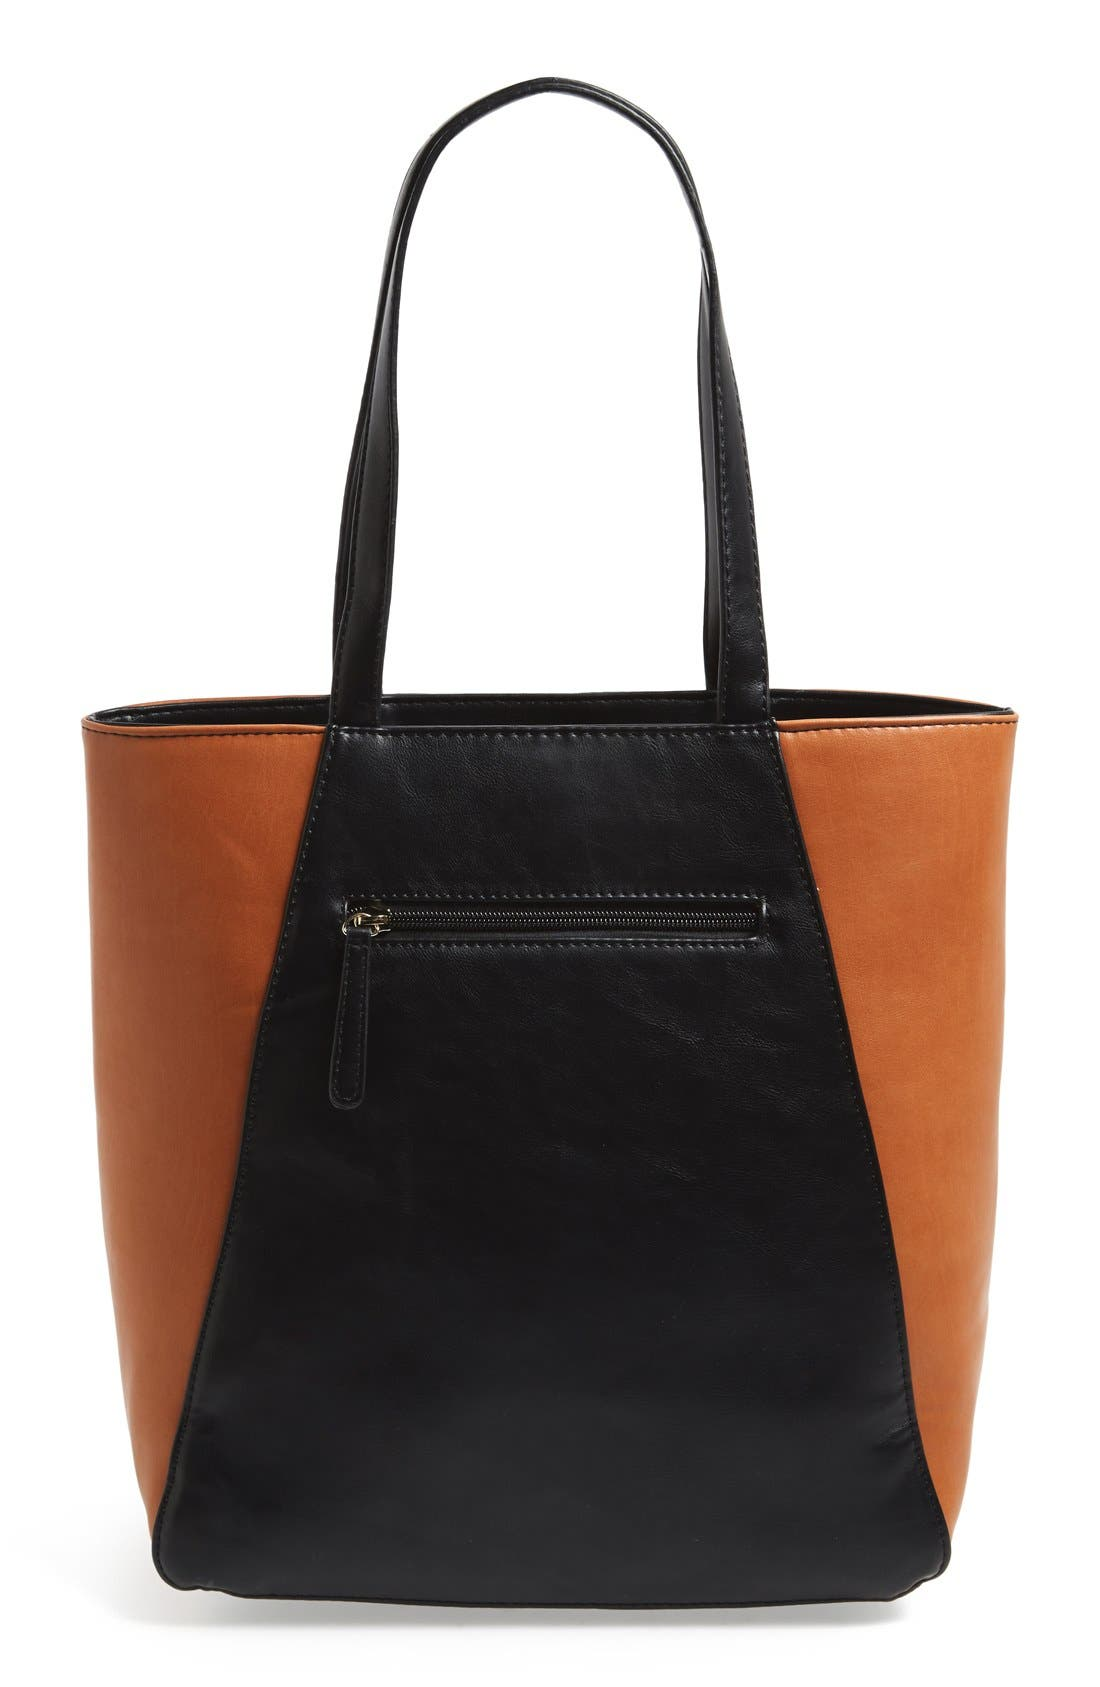 SOLE SOCIETY, Faux Leather Tote, Alternate thumbnail 2, color, 001